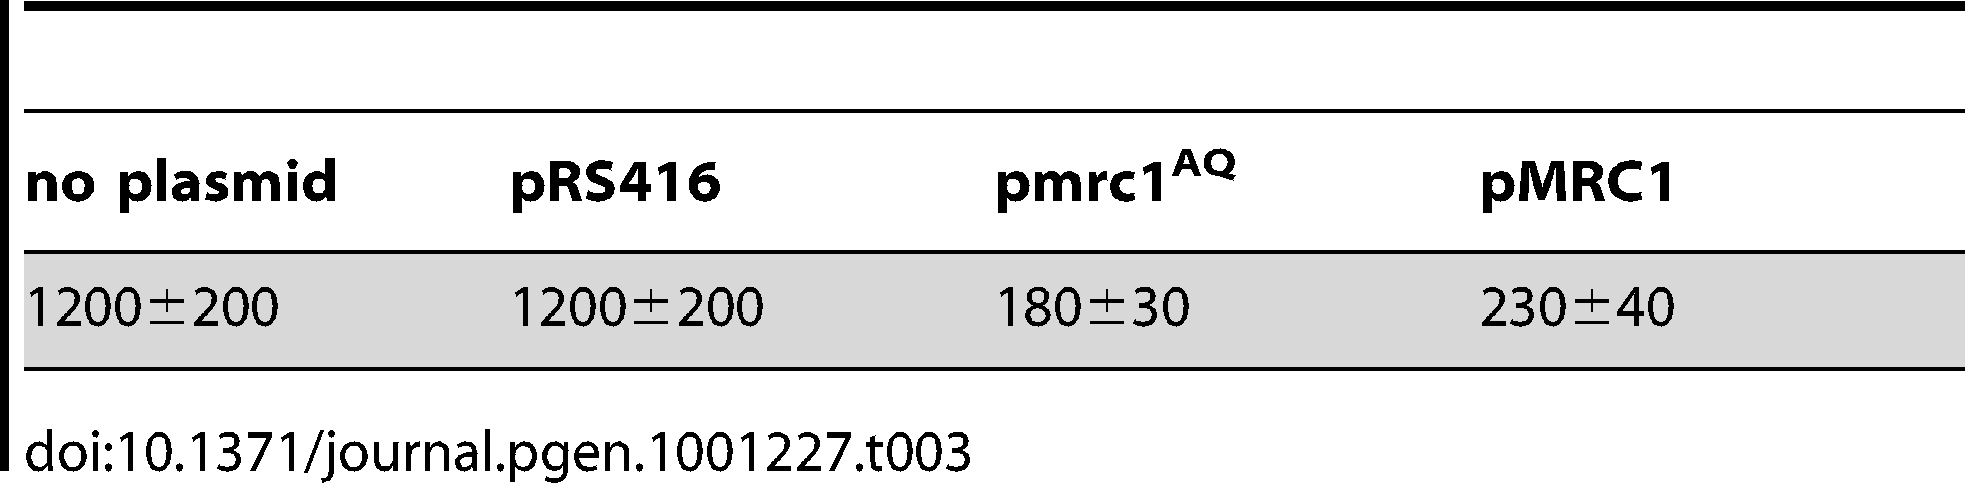 Loss rate of 5ORIΔ-ΔR derivative in <i>mrc1Δ</i> strain transformed with plasmids (Losses per division ± S.D. × 10<sup>5</sup>).